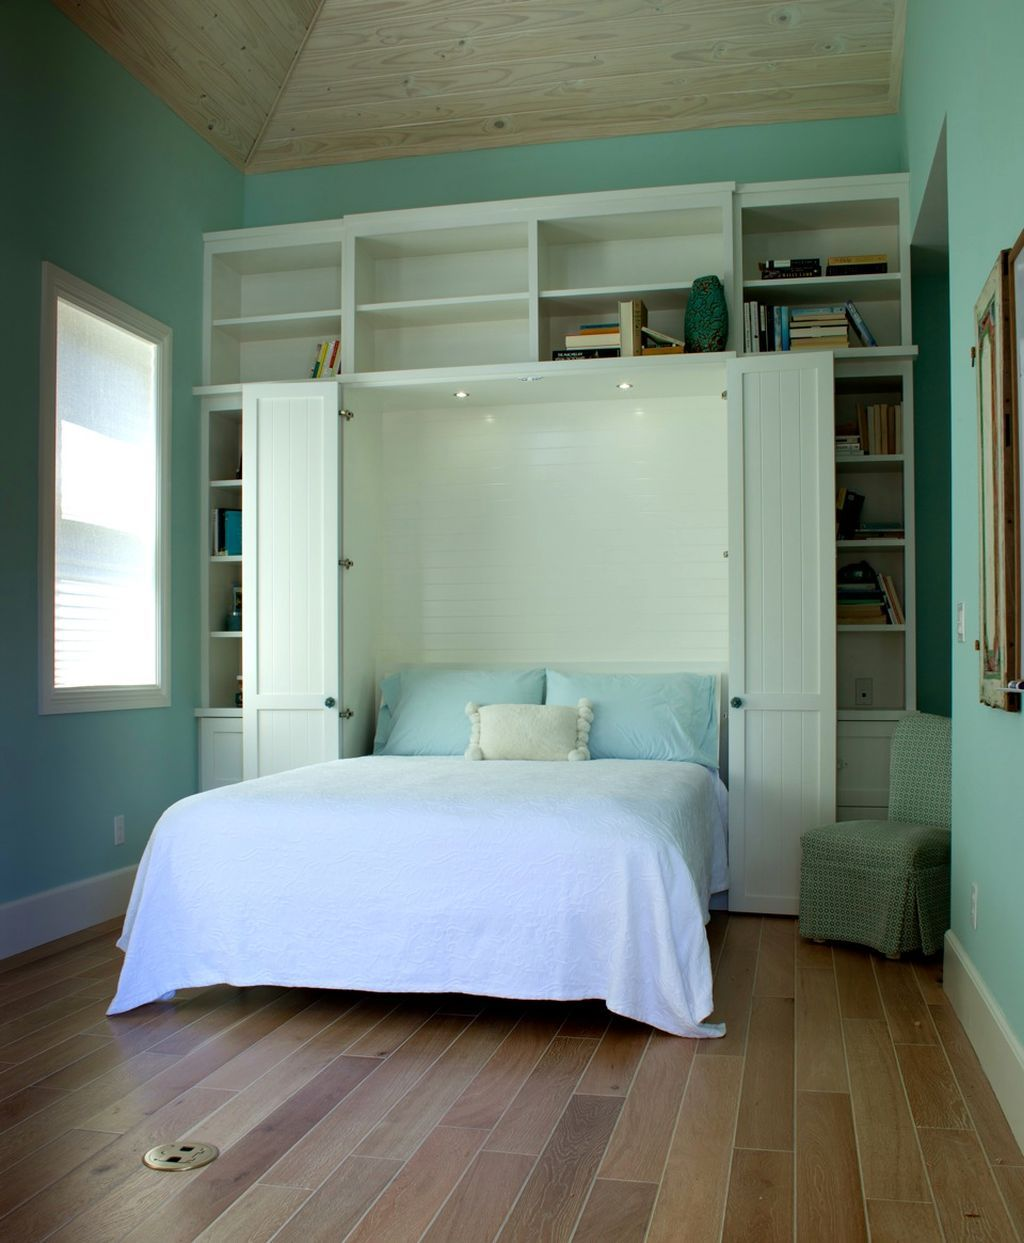 Murphy Bed Murphy Bed Design Ideas For Small Rooms In Blue Turtle Nest Ideas Pinterest